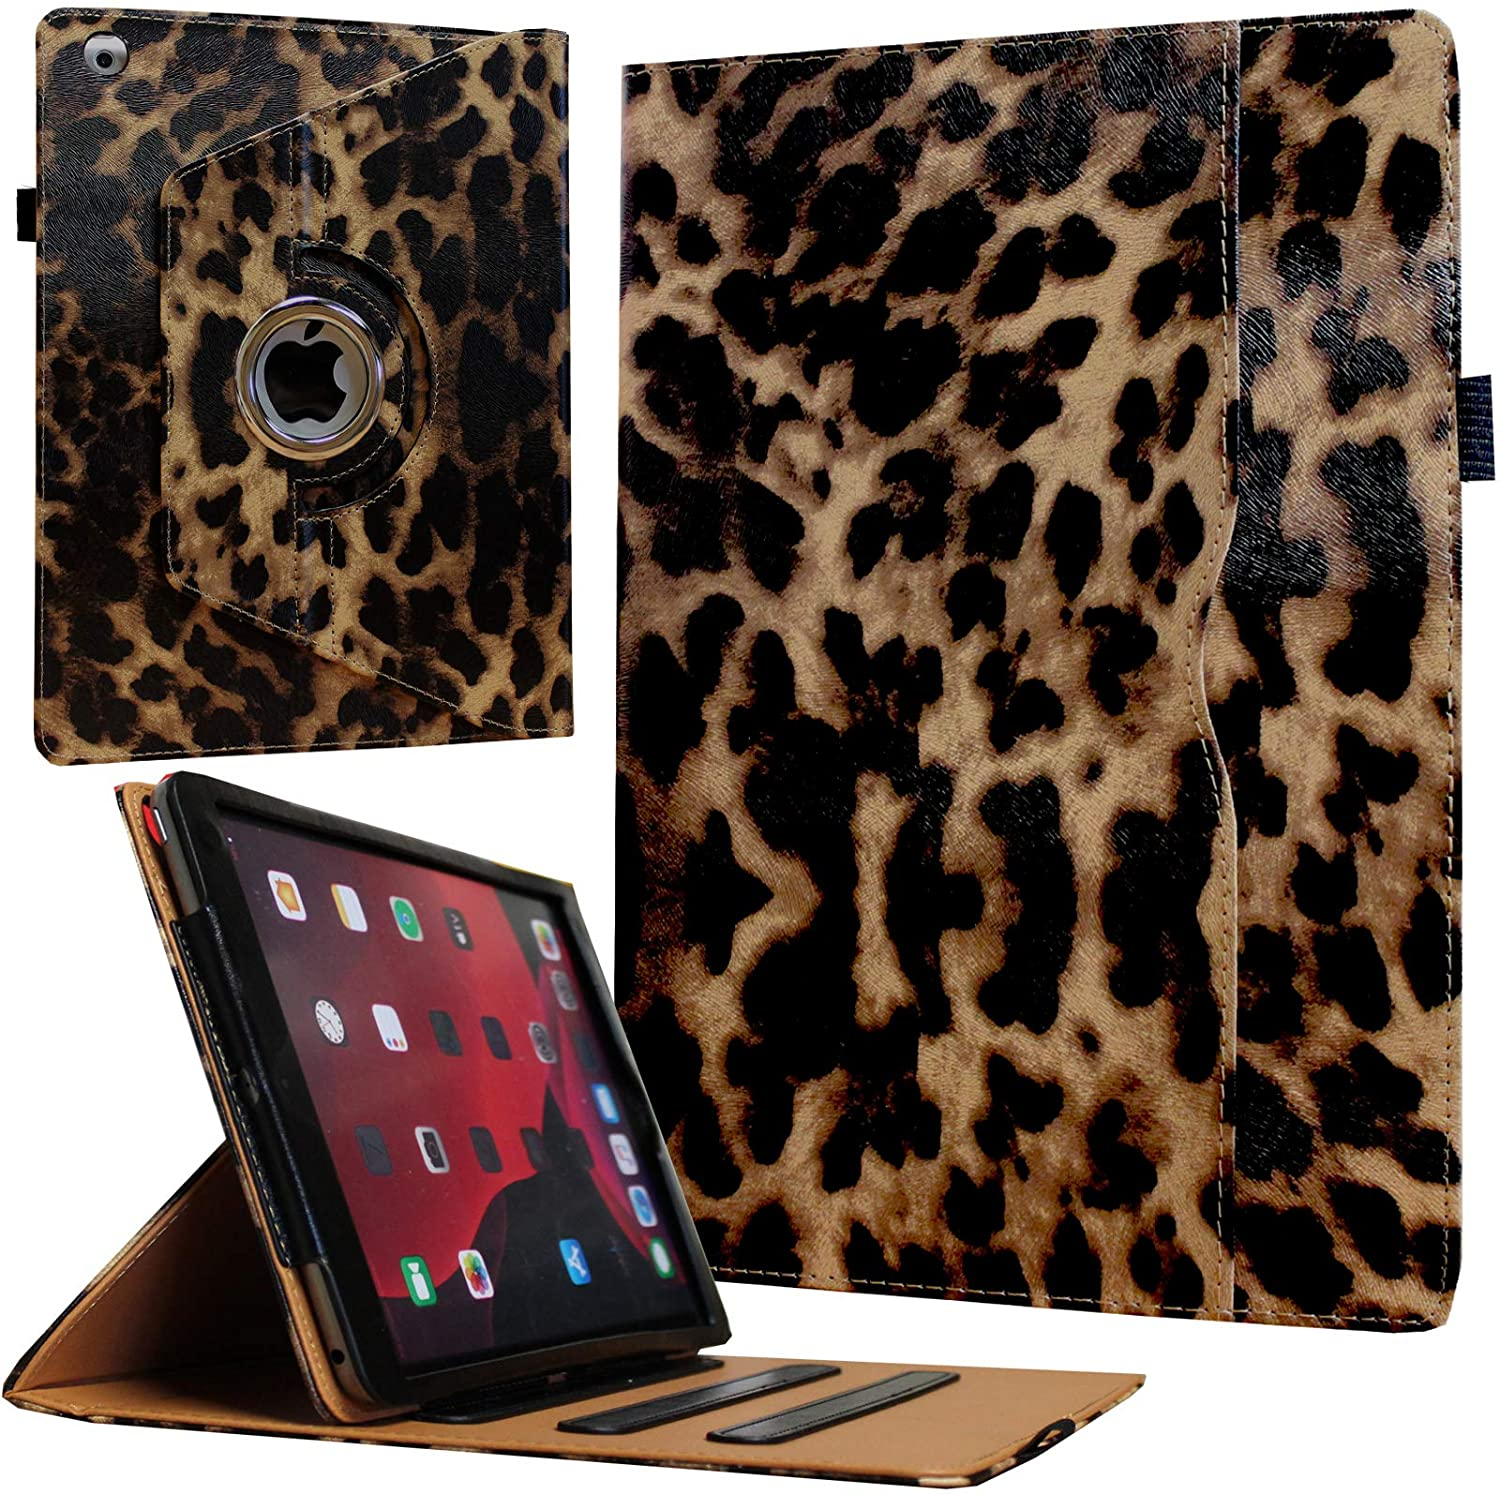 JYtrend Case for Old iPad 2(2011)/iPad 3(2012)/iPad 4(2012), Rotating Stand Wake up/Sleep Smart Cover with Pocket and Pen Holder for A1395 A1396 A1397 A1403 A1416 A1430 A1458 A1459 A1460 (Leopard)